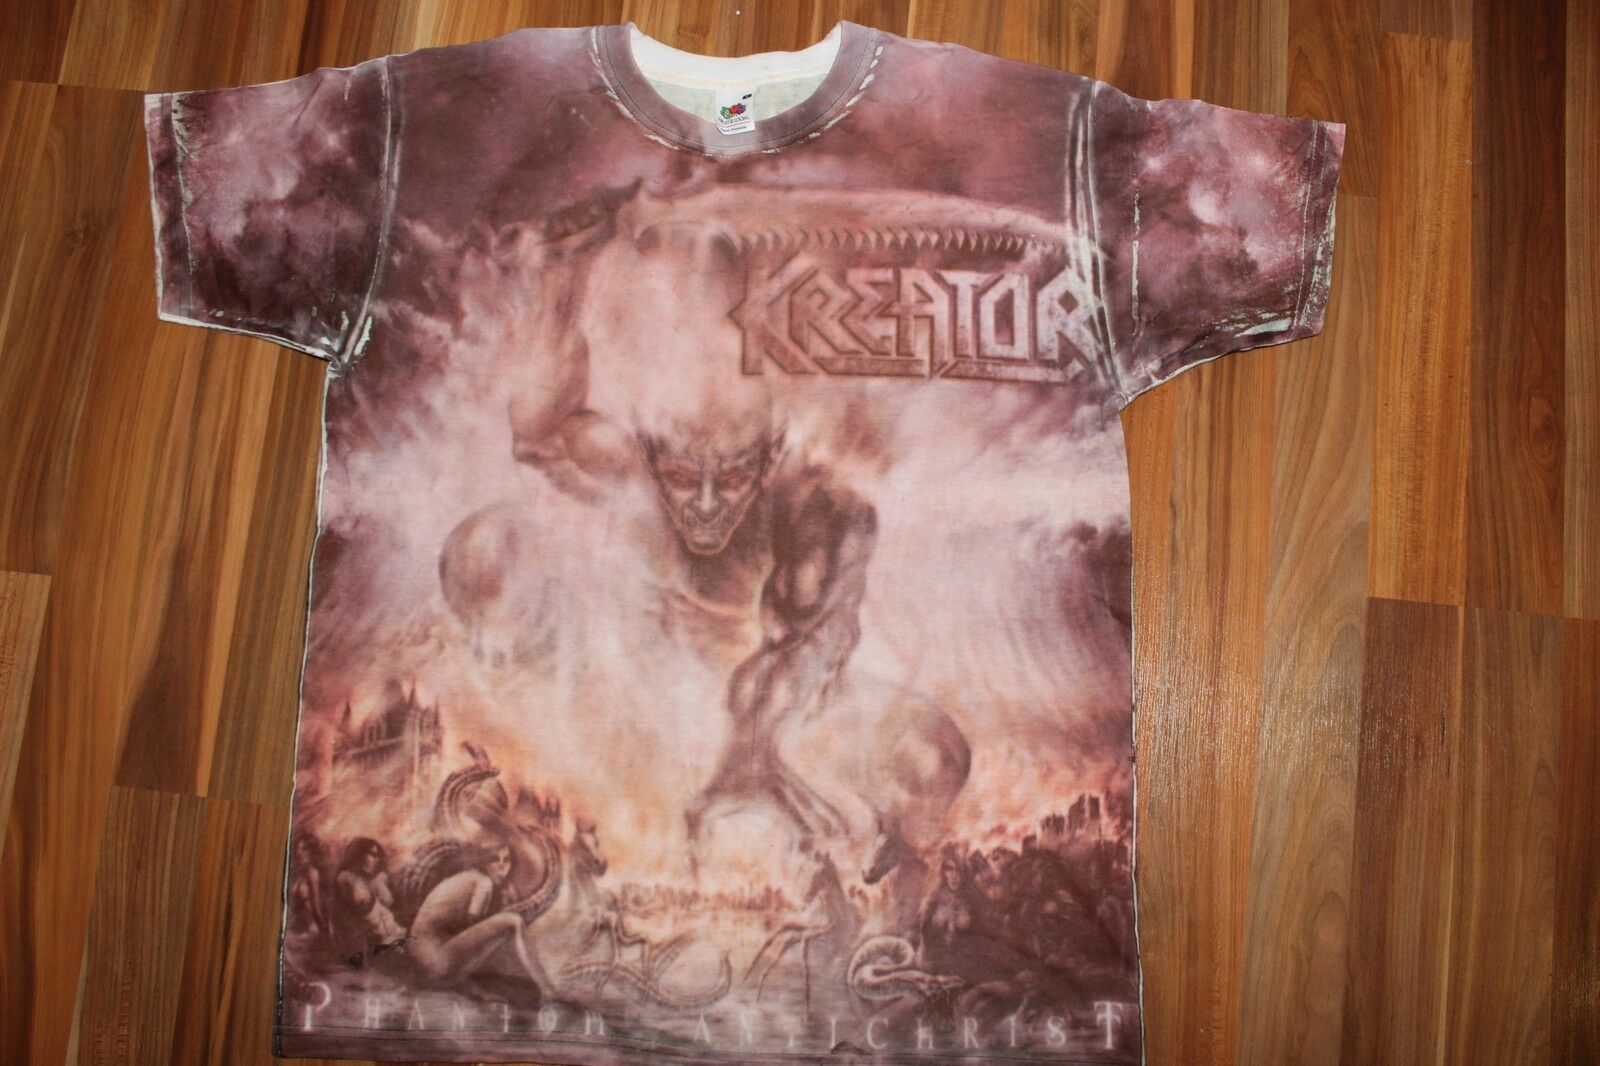 Kreator phantom antichrist all over print sodom metallica destruction slayer metallica sodom dio 433f7a